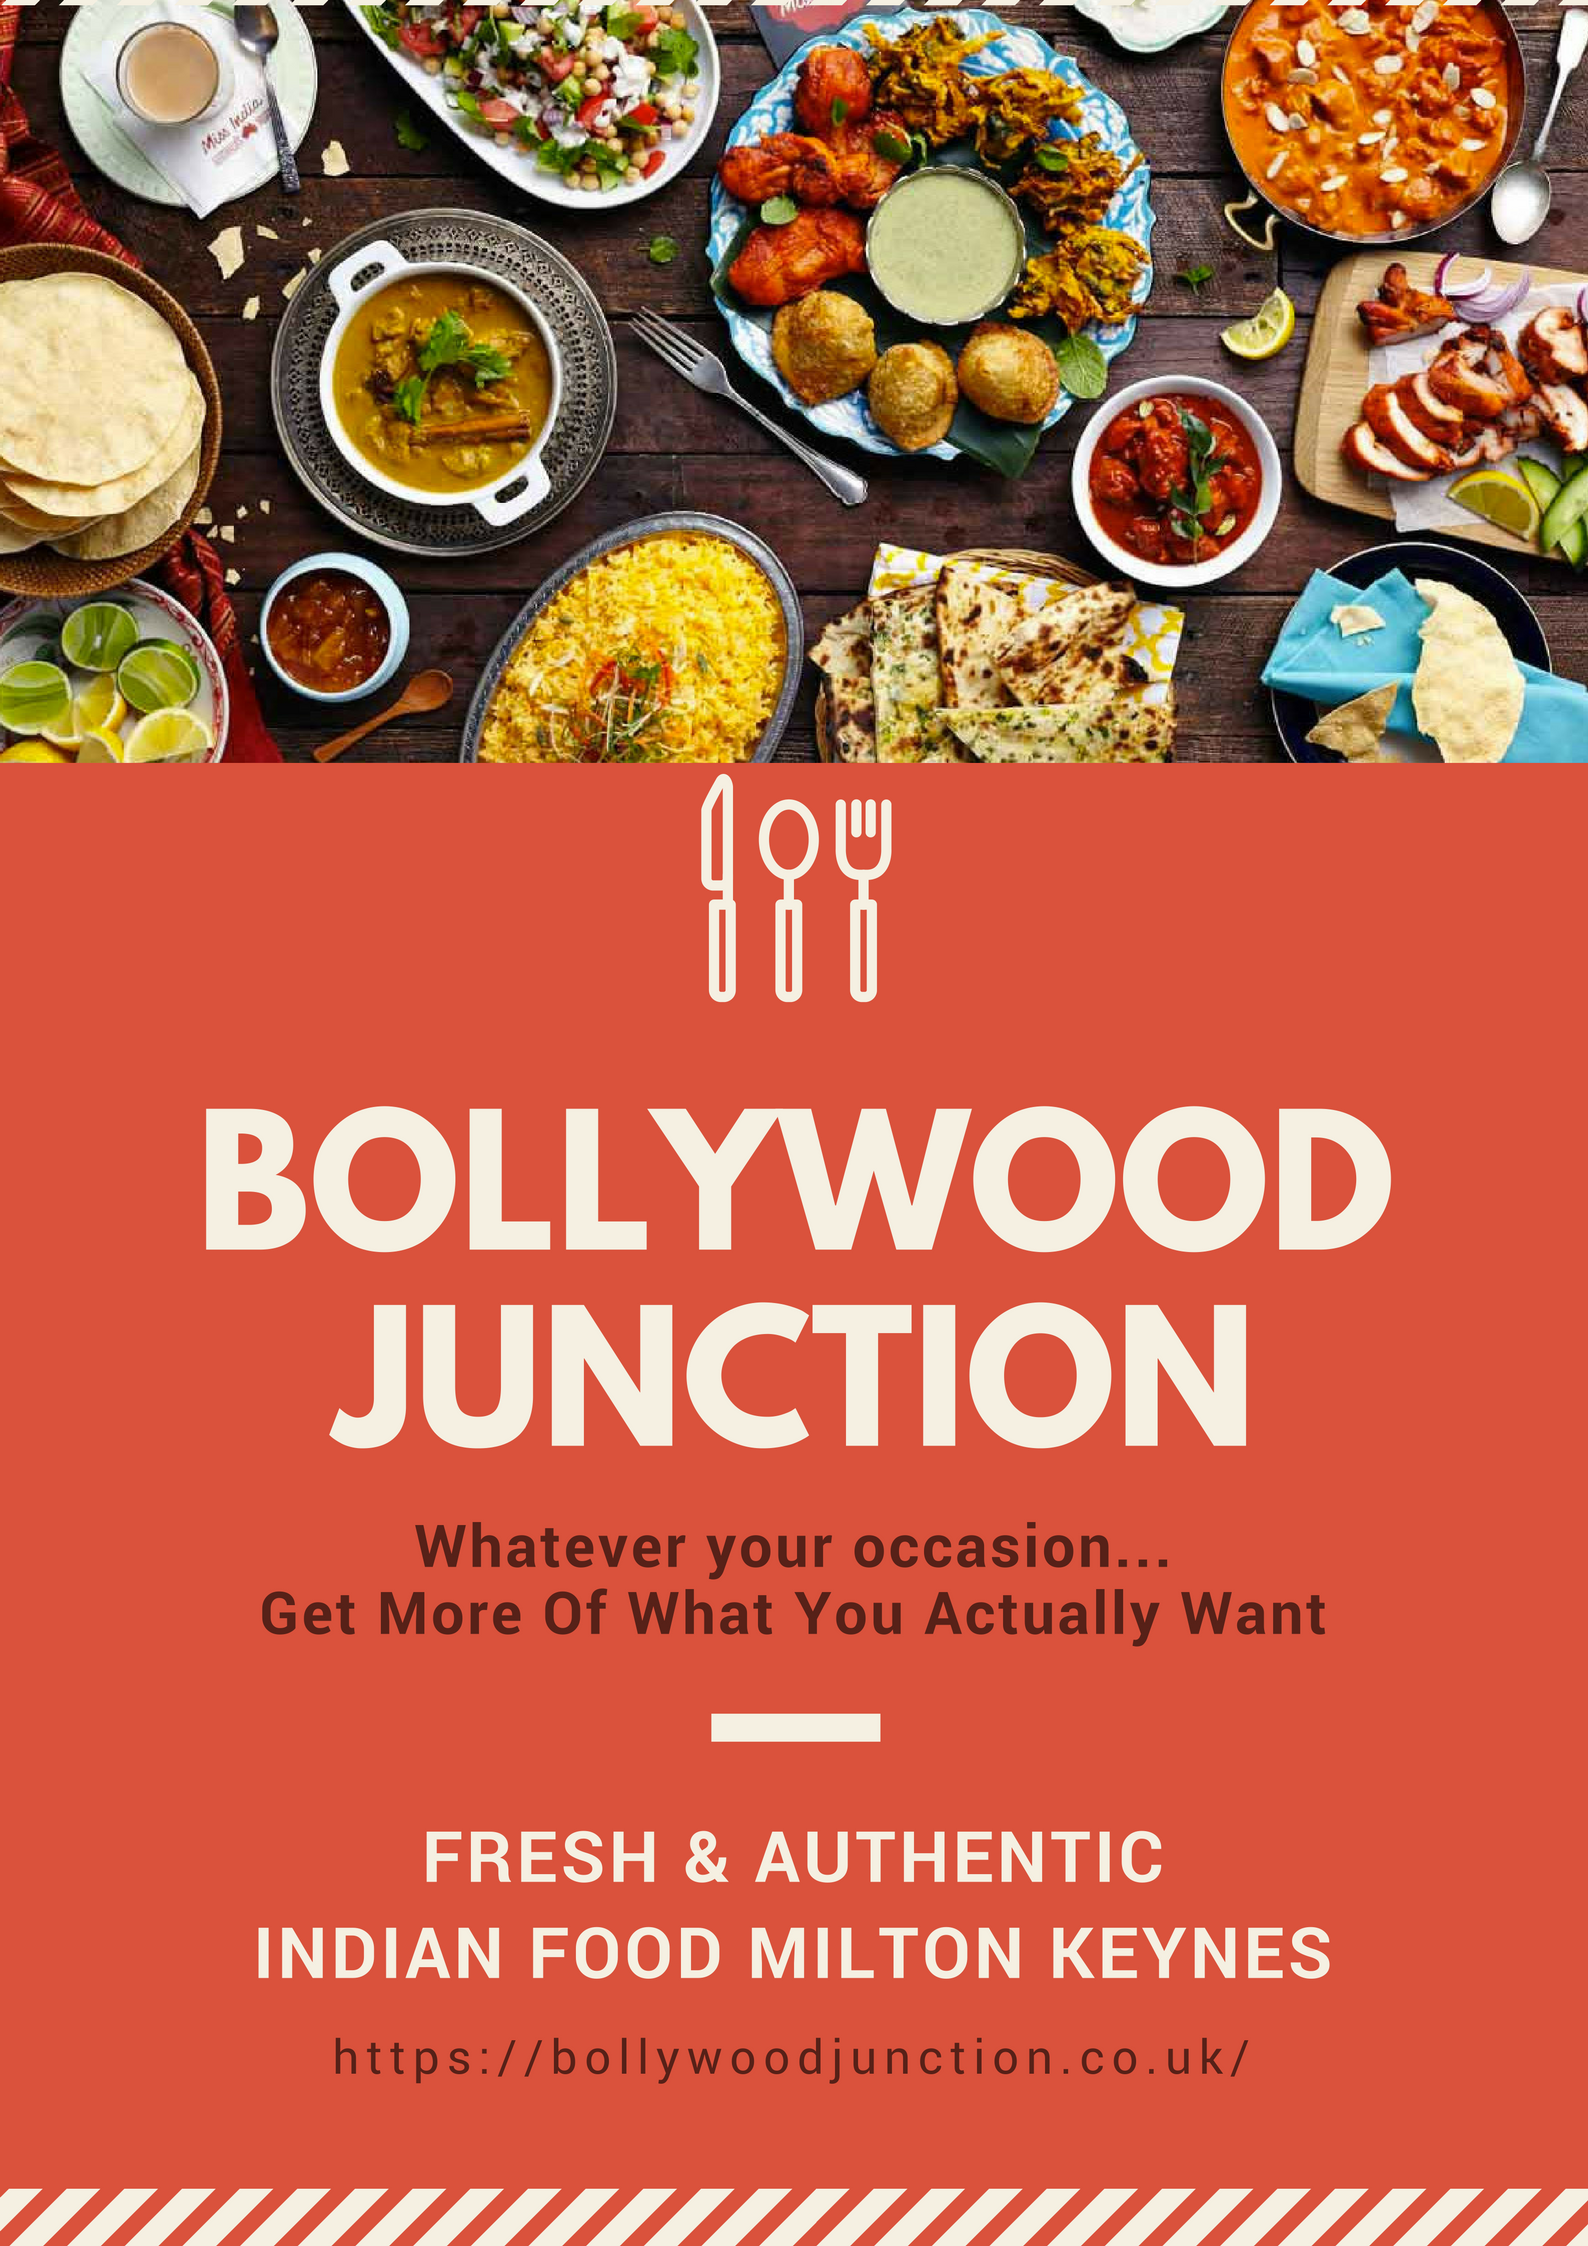 Fresh authentic delicious indian food for lunchdinnerparty fresh authentic delicious indian food for lunchdinnerparty forumfinder Gallery